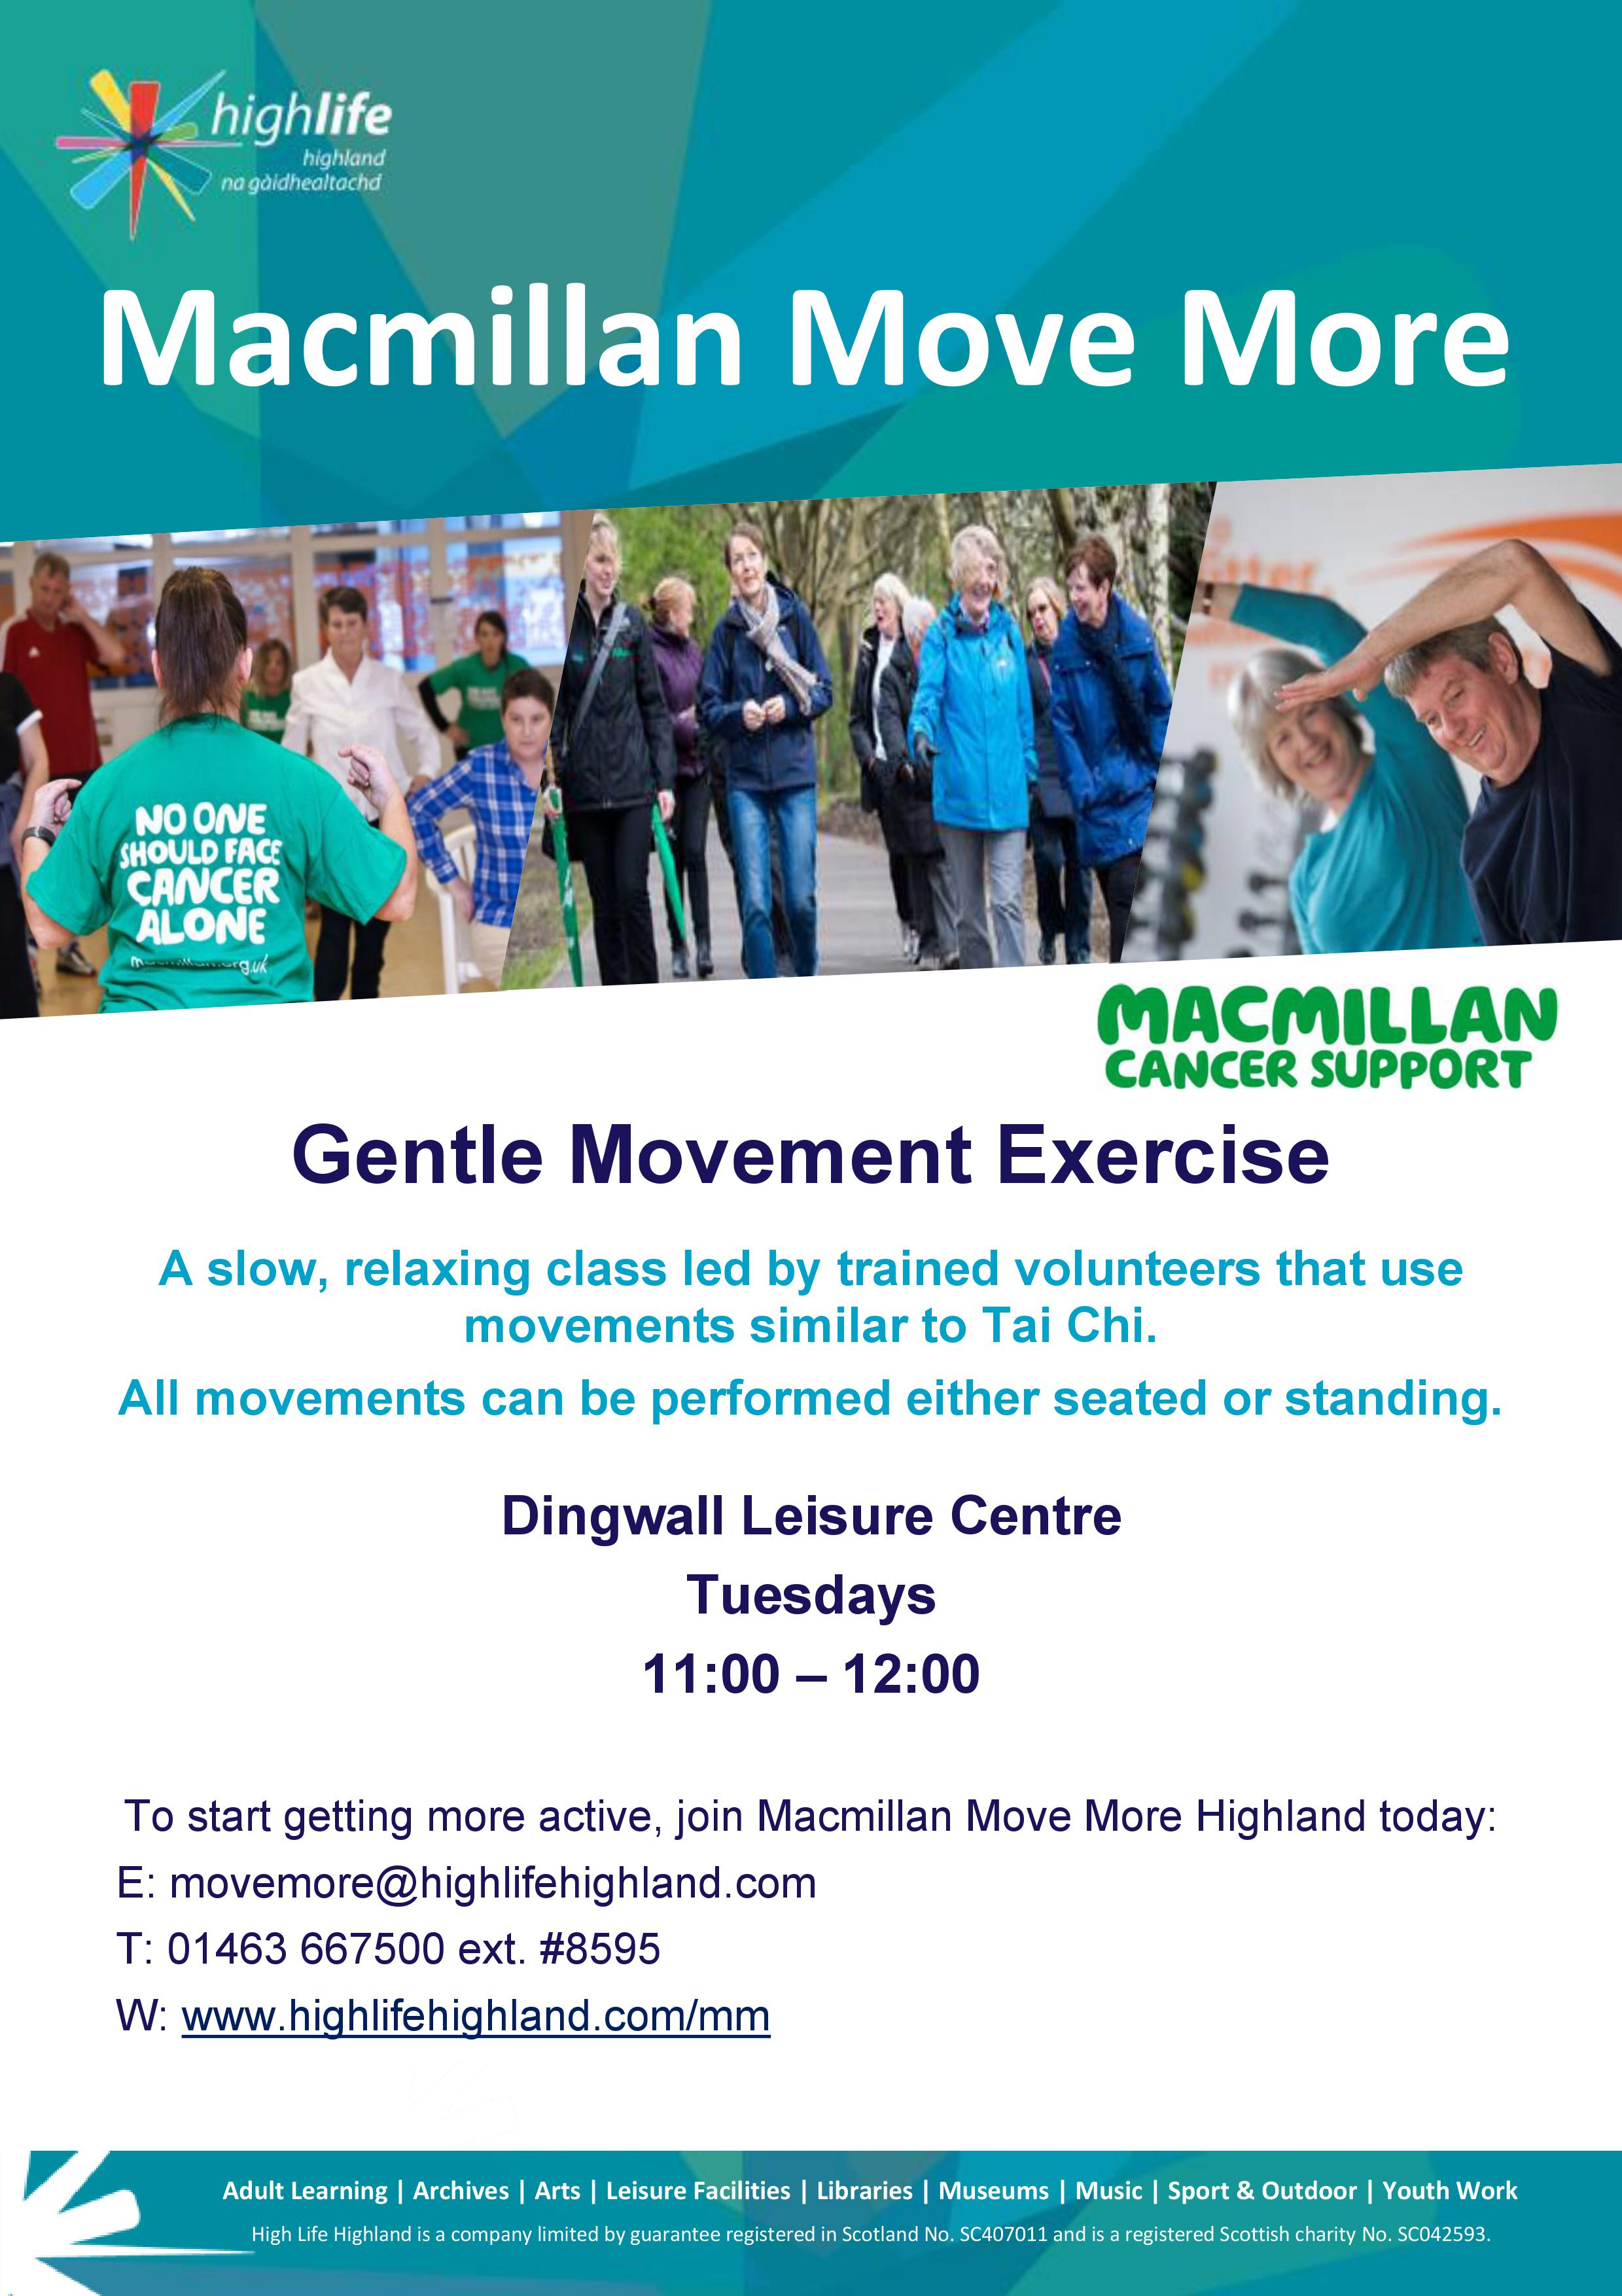 Macmillan Move More